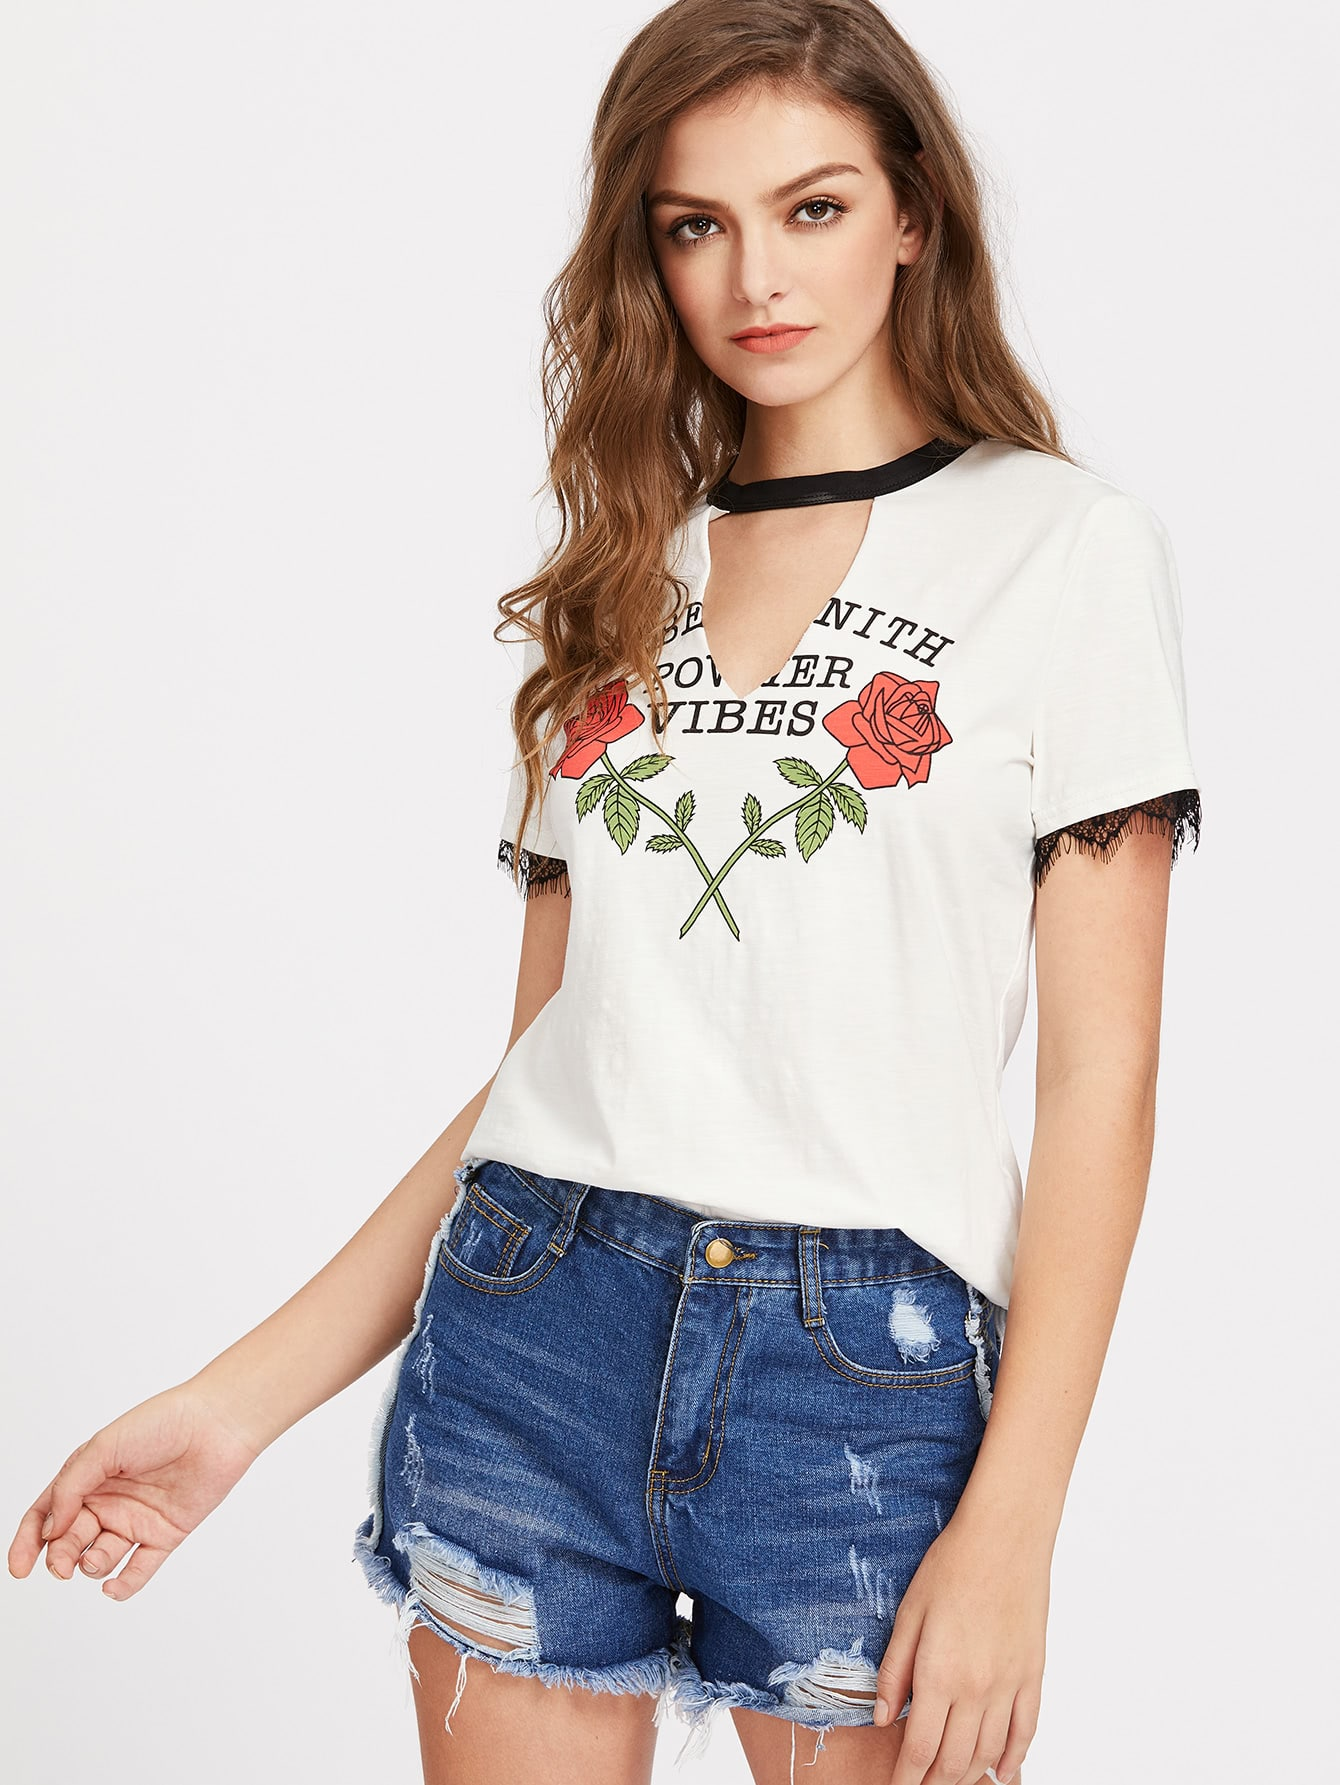 Contrast V Cutout Neck Lace Trim Rose Print Tee